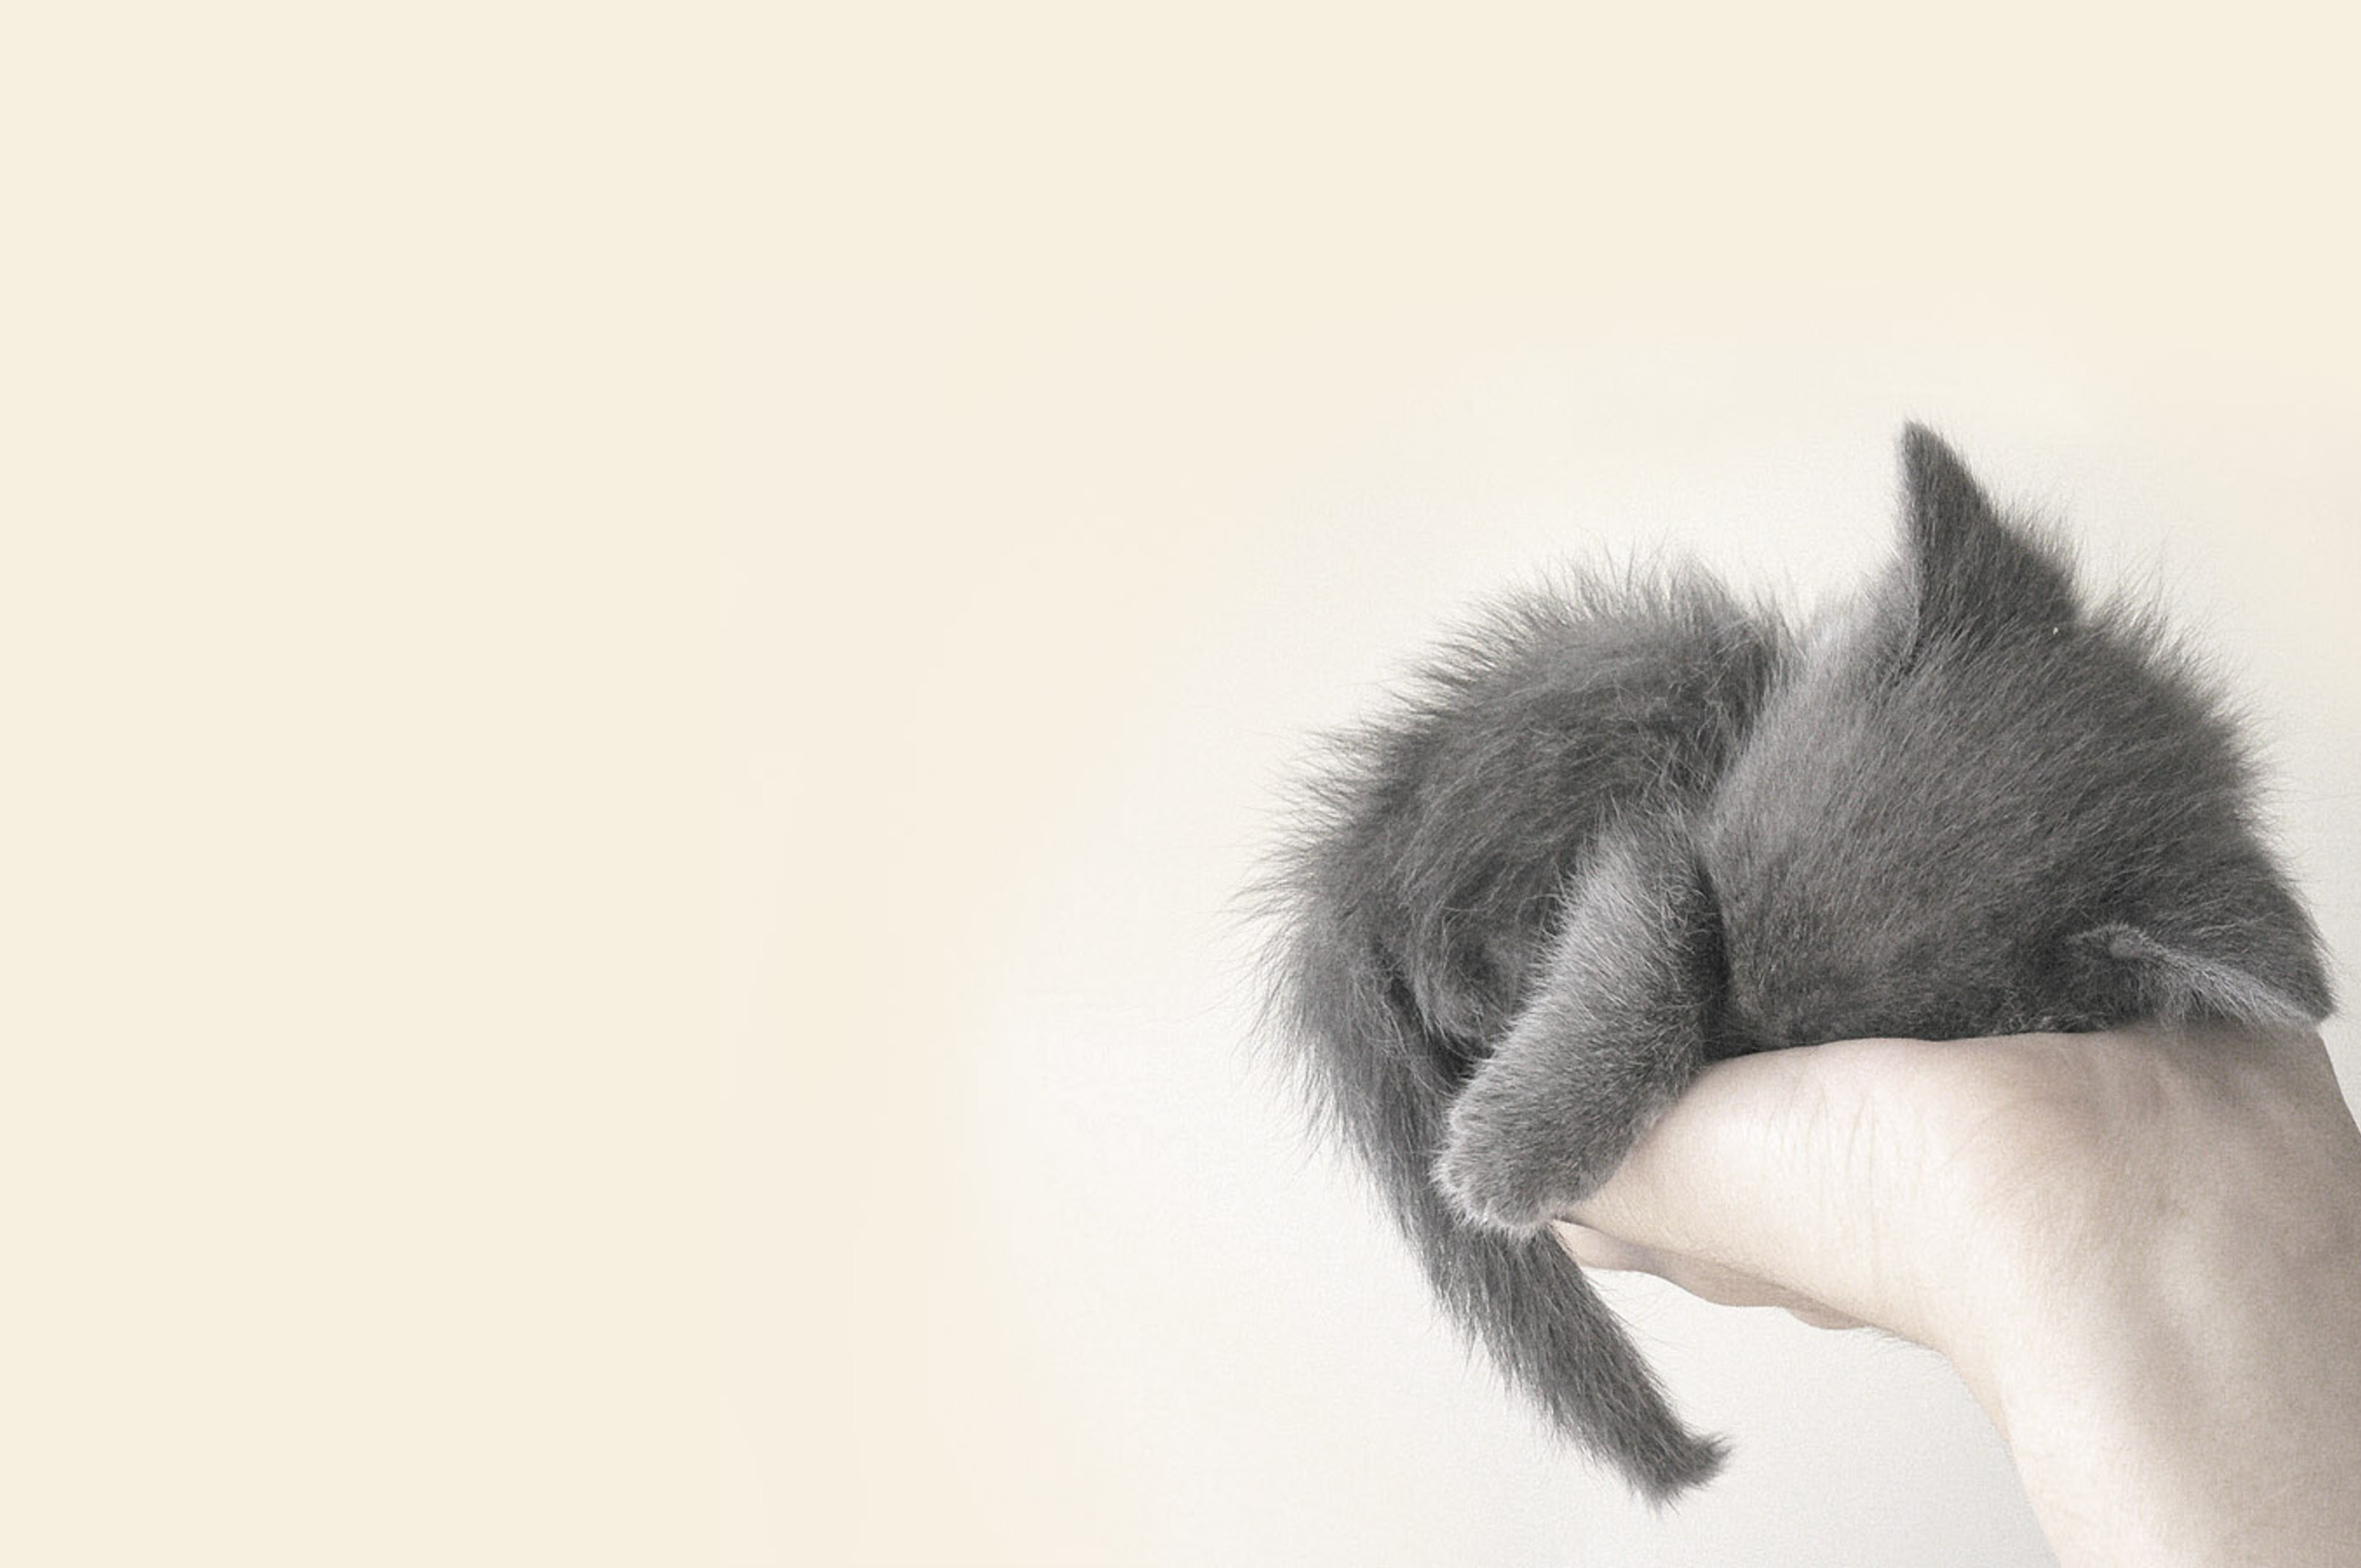 2560x1700 Cute Cat Chromebook Pixel Hd 4k Wallpapers Images